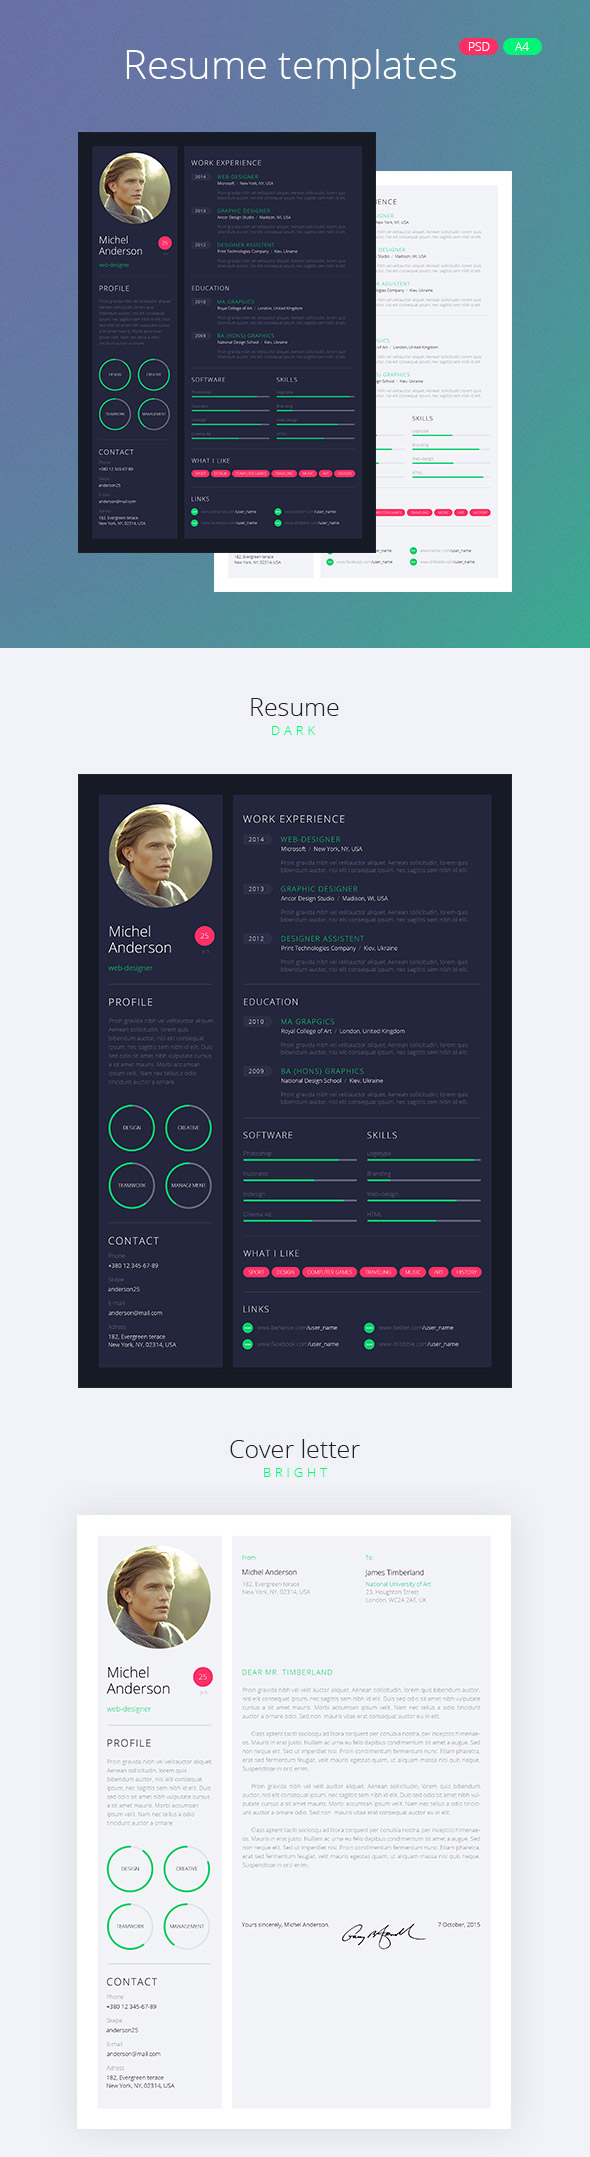 25 creative resume templates to land a new job in style web design style resume cv pack yelopaper Gallery